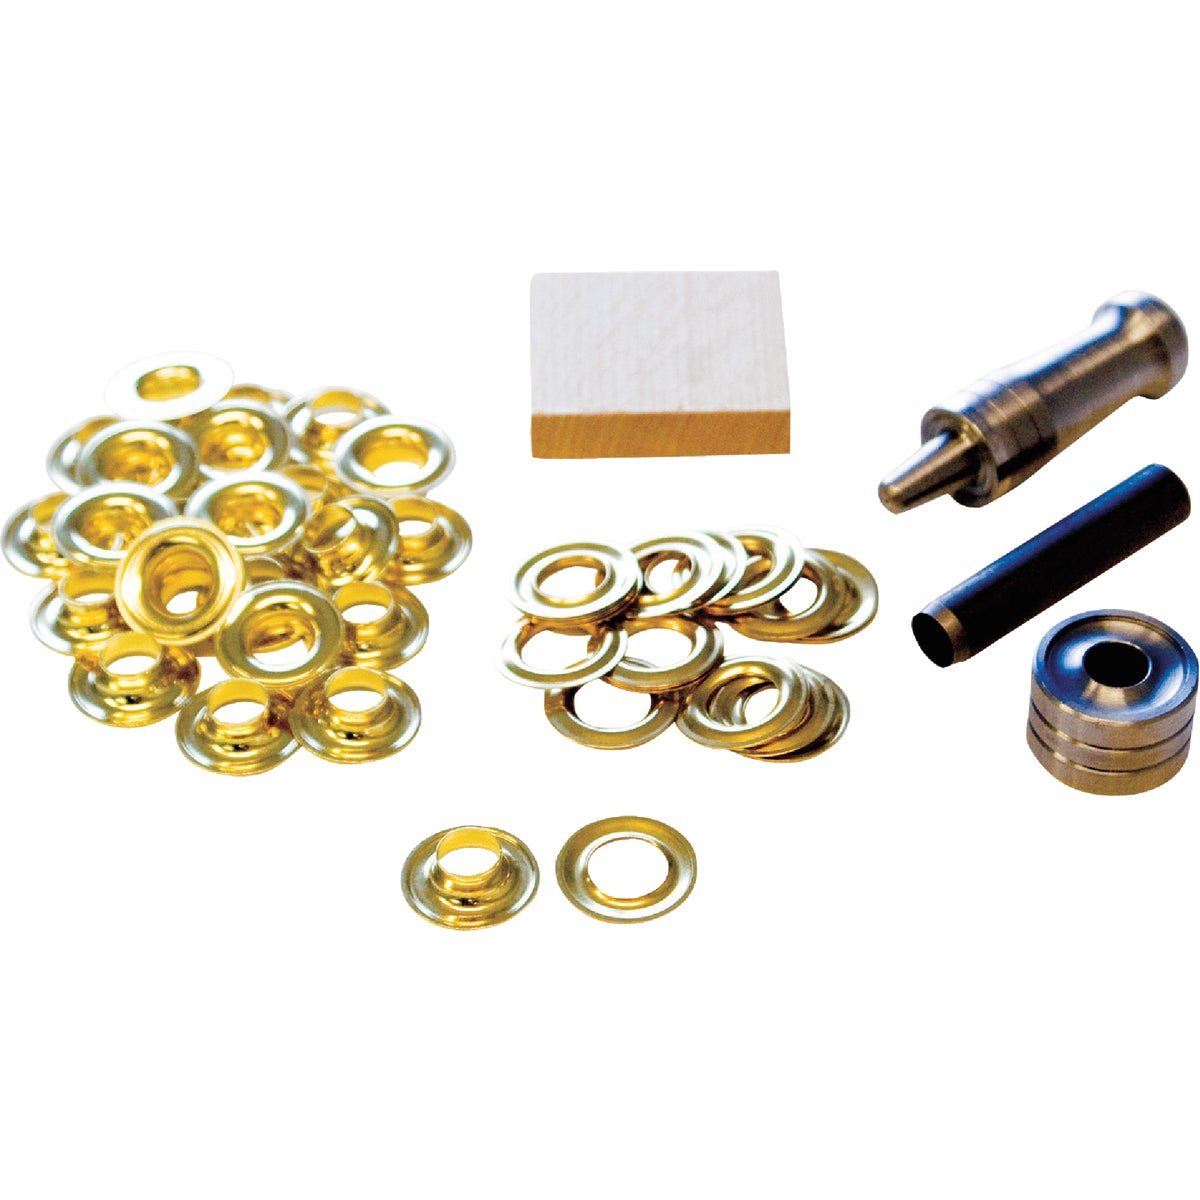 "3/8"" HANDI GROMMET KIT - 1073A-2 by Lord & Hodge Inc"